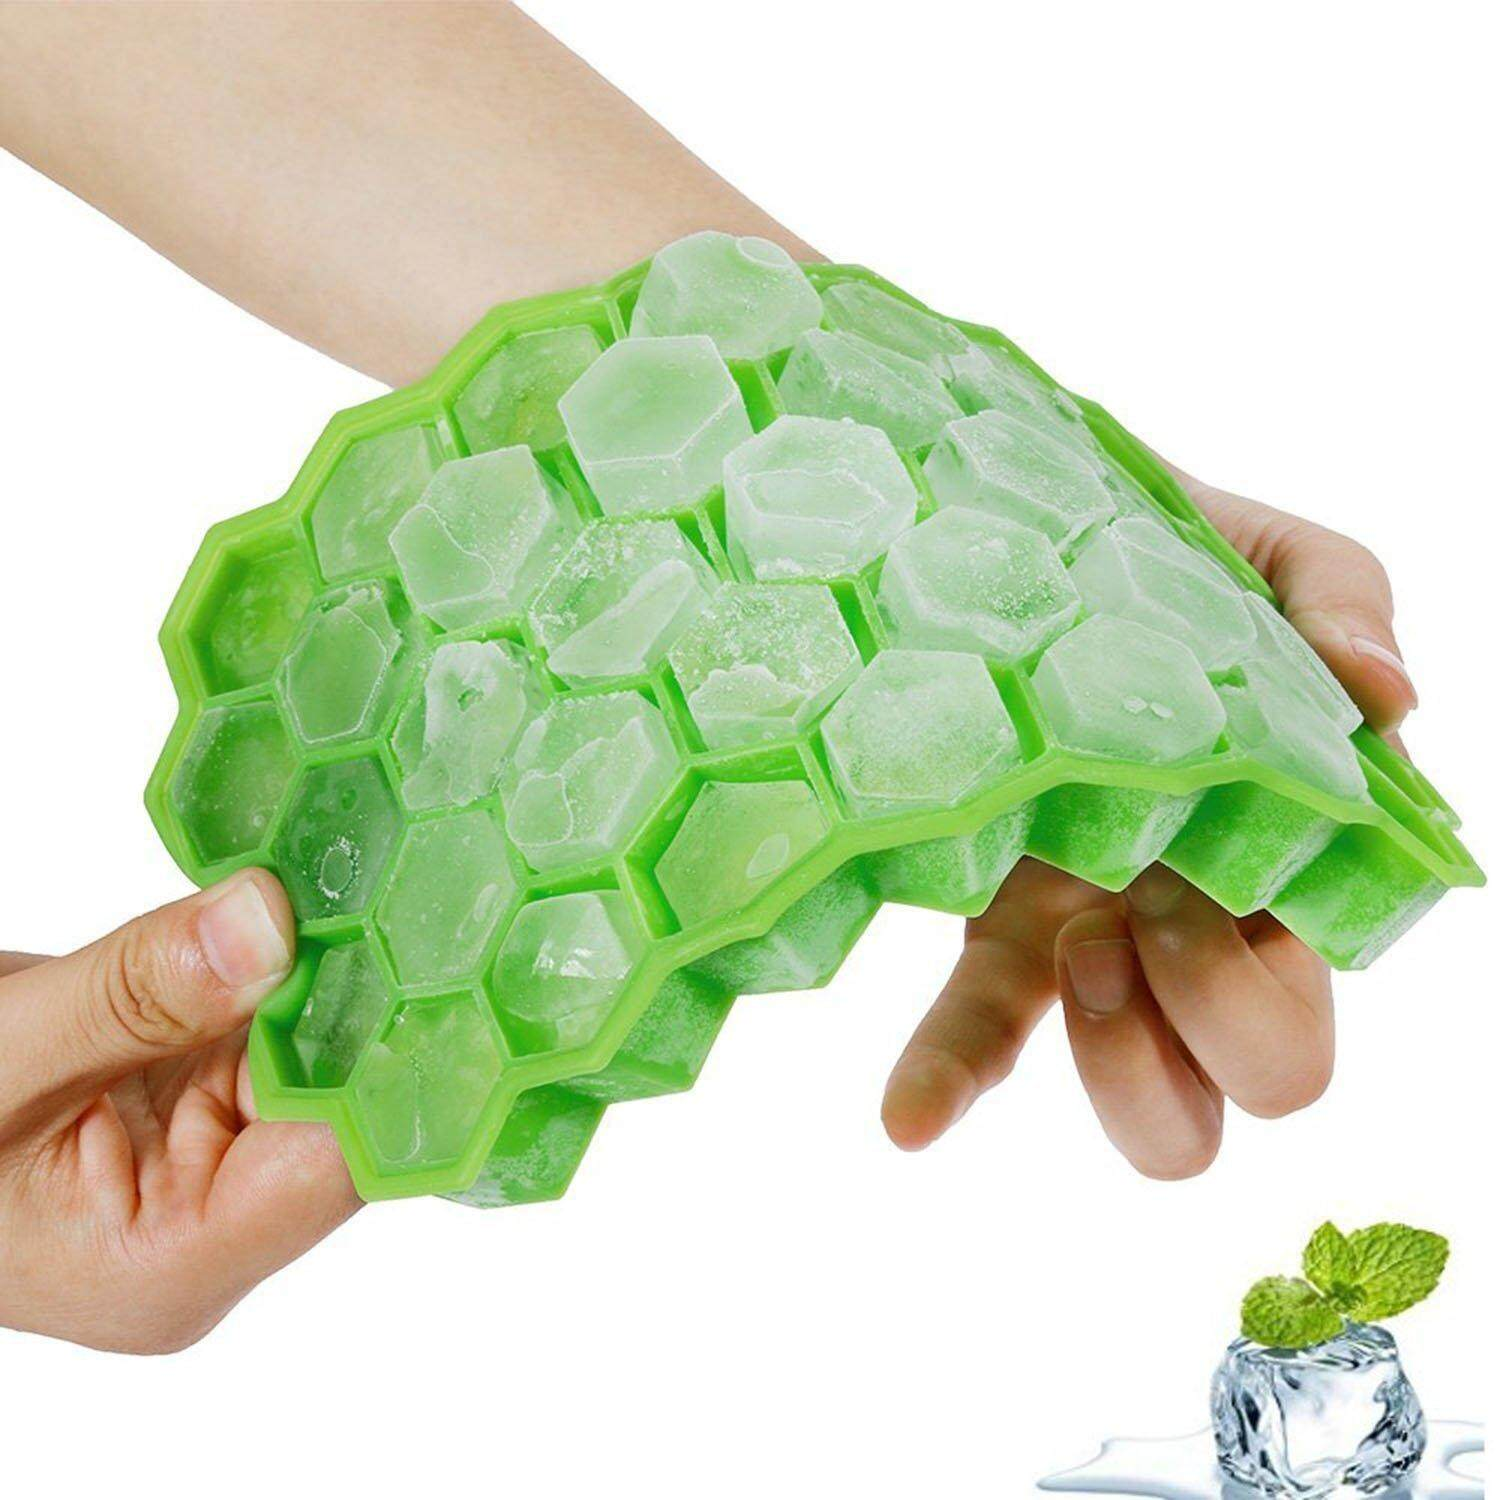 37 Compartments Mini Silicone Ice Cube Maker Mold - Green By Tvcc.